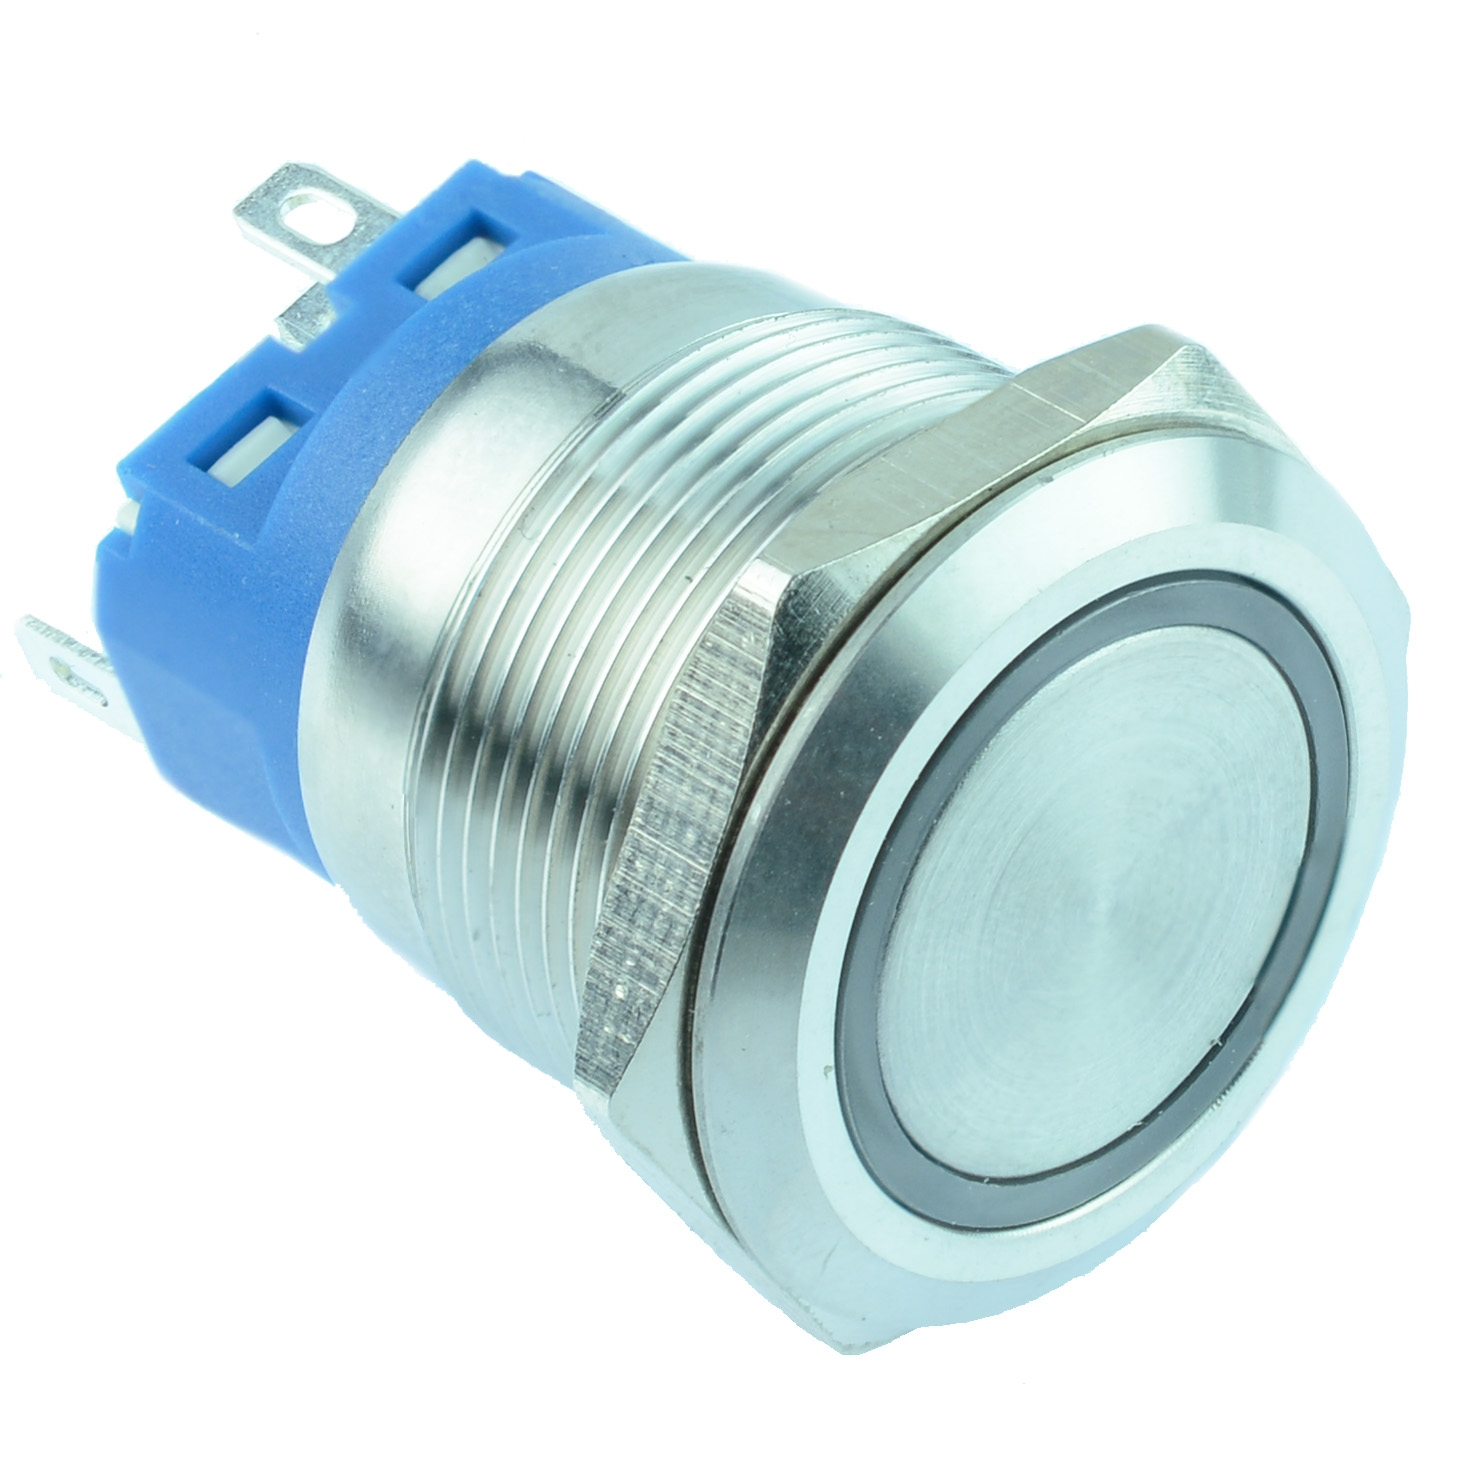 22mm illuminated Vandal Resistant Switches